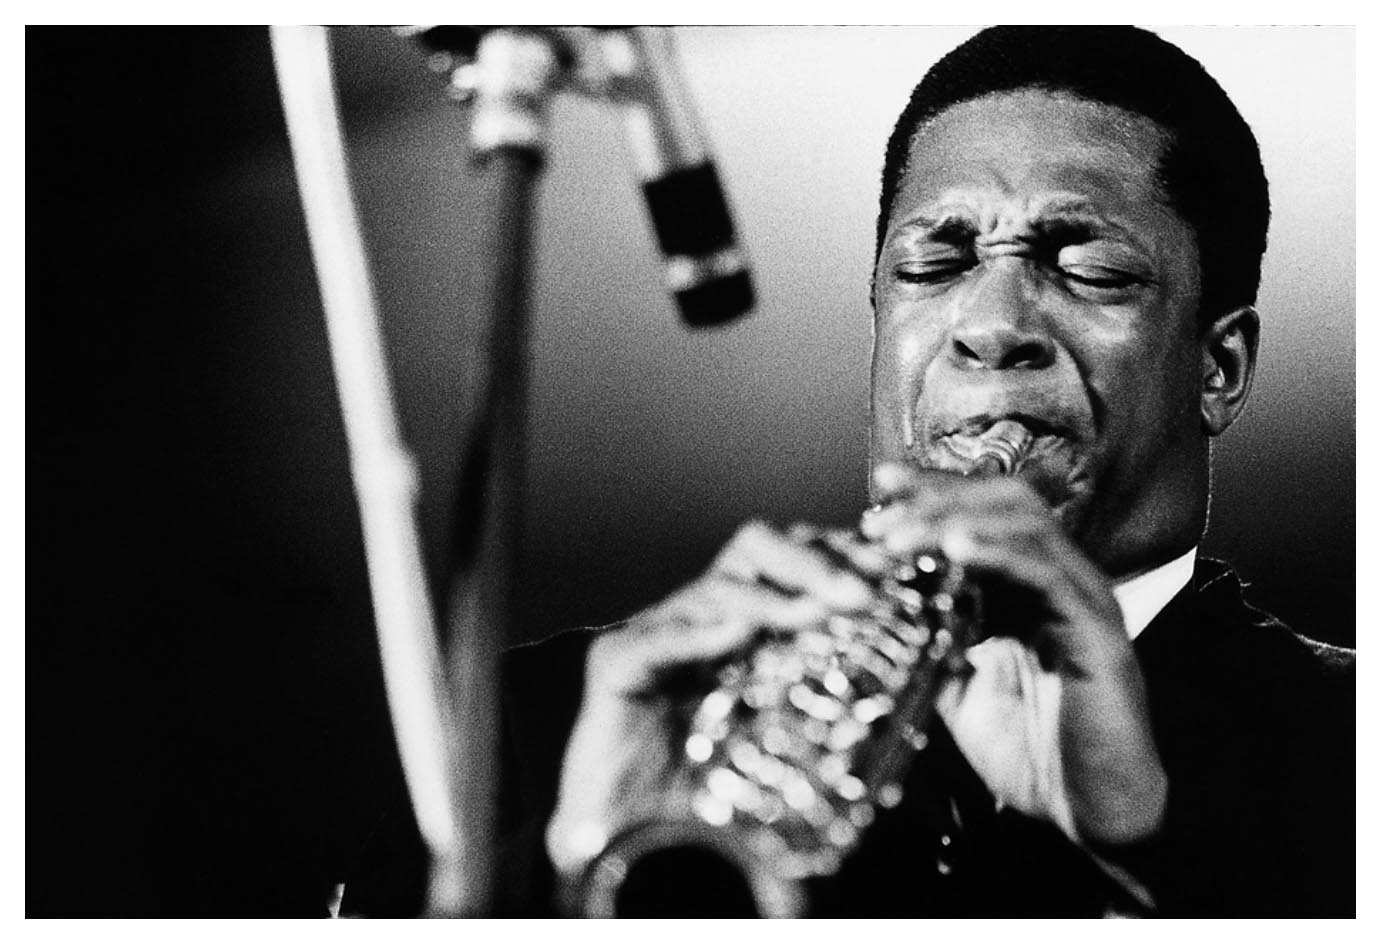 a brief analysis of the life and music of john coltrane